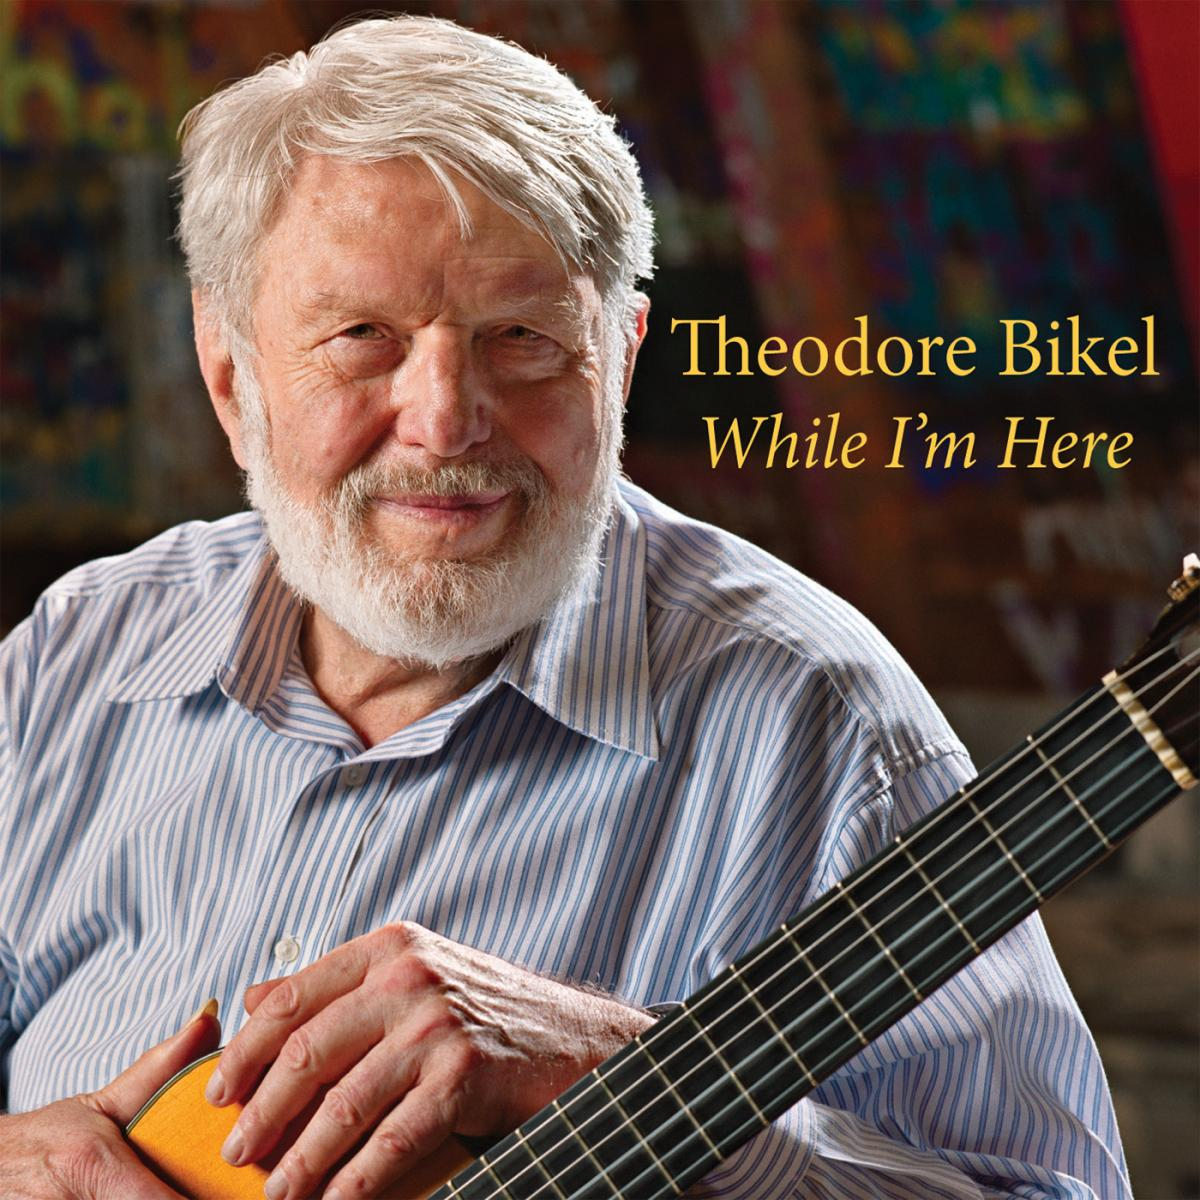 Theodore Bikel Red House Records